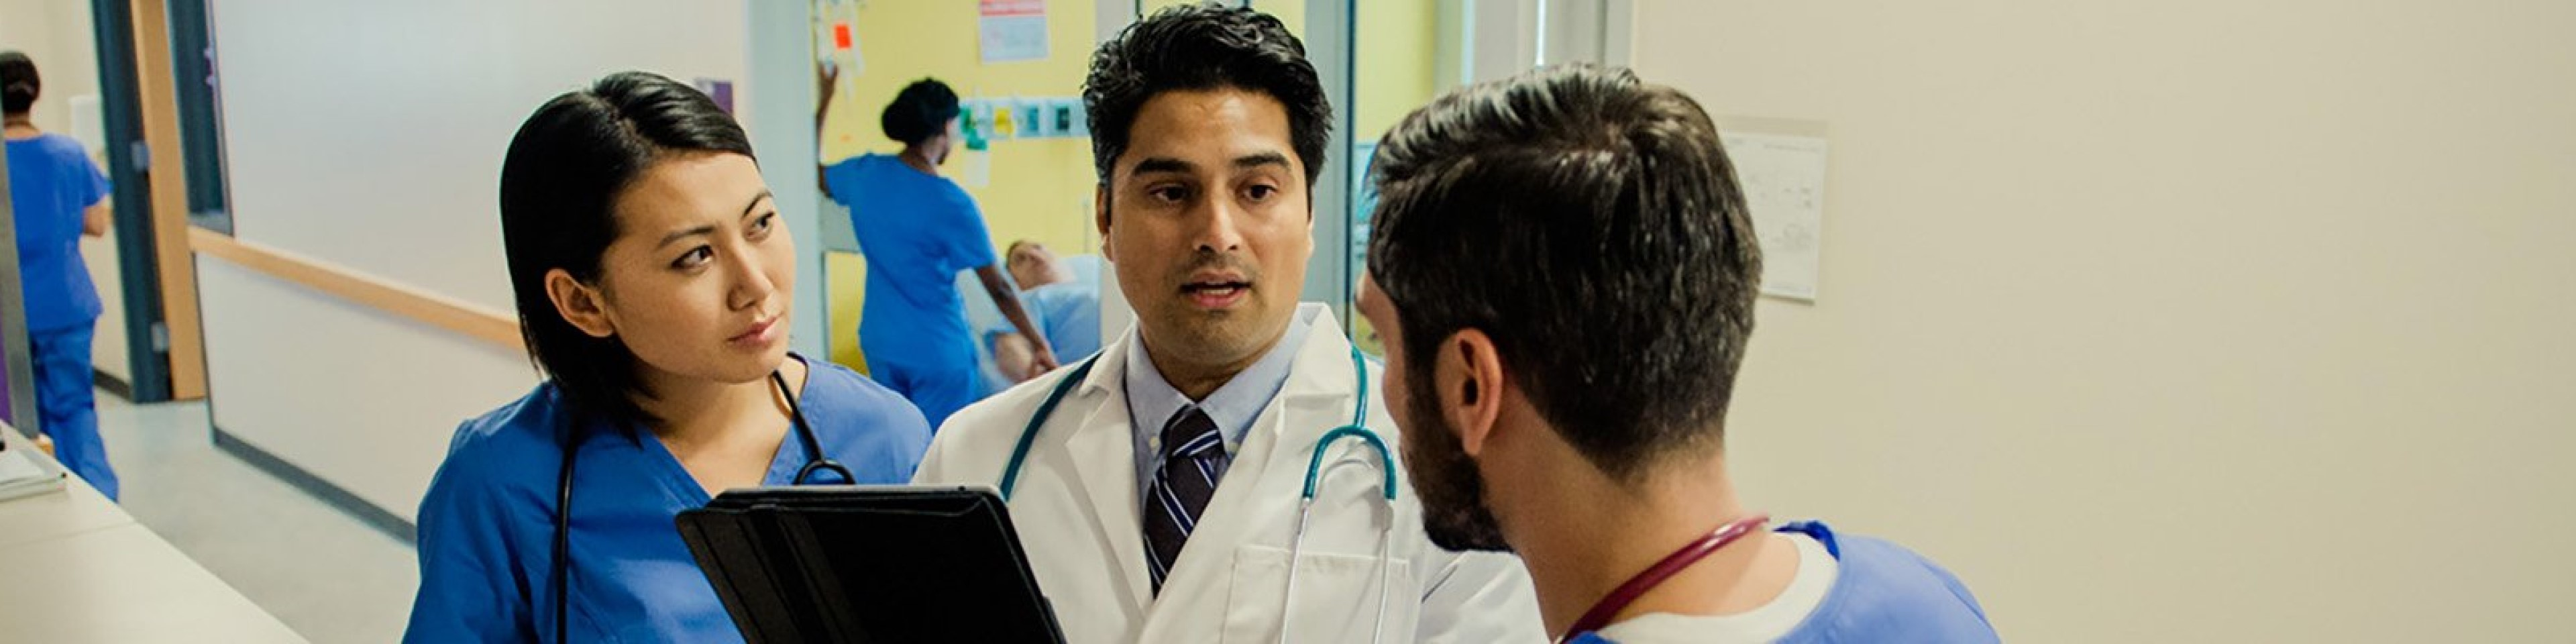 Doctor speaking with staff in hospital hallway